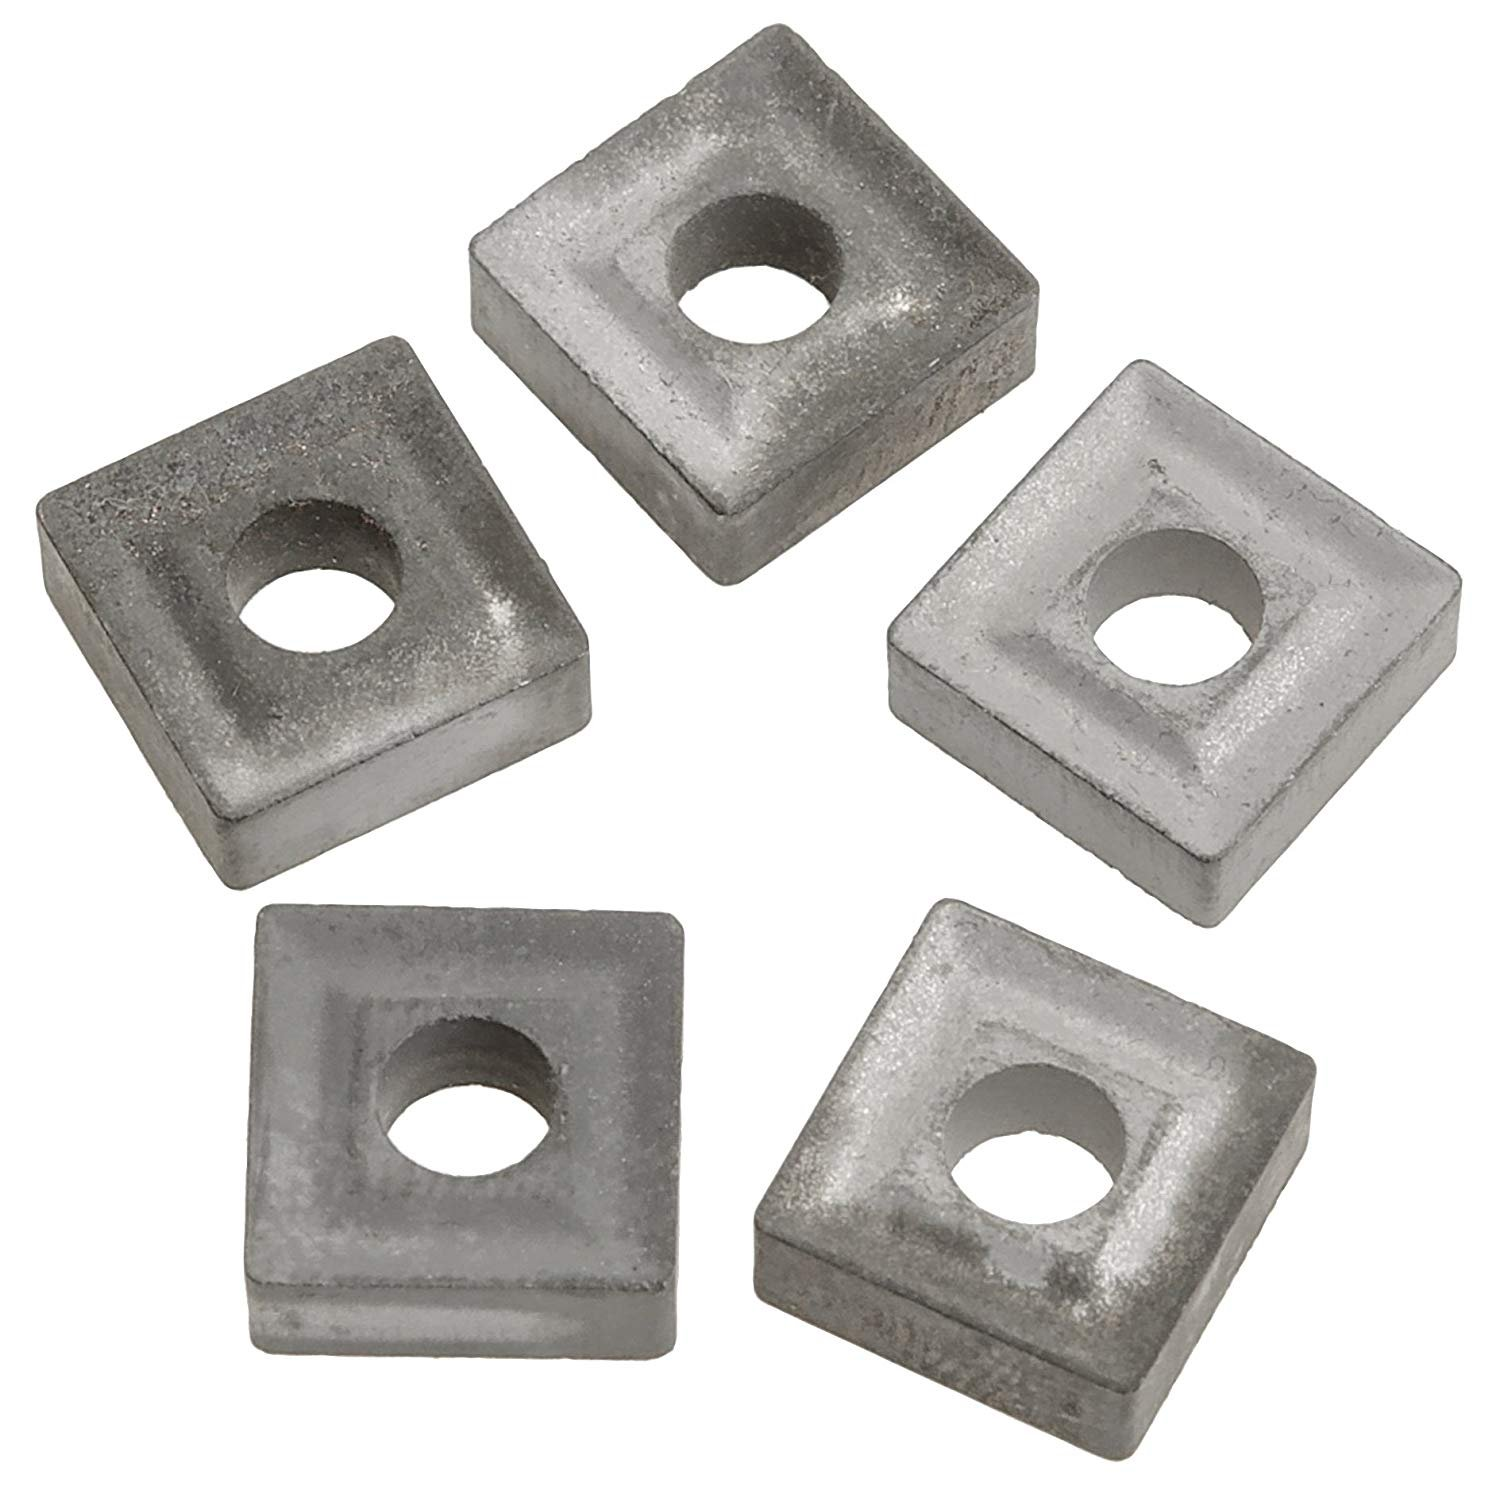 Grizzly G7053 Carbide Insert for Cast Iron, RH - For use w/ G7036